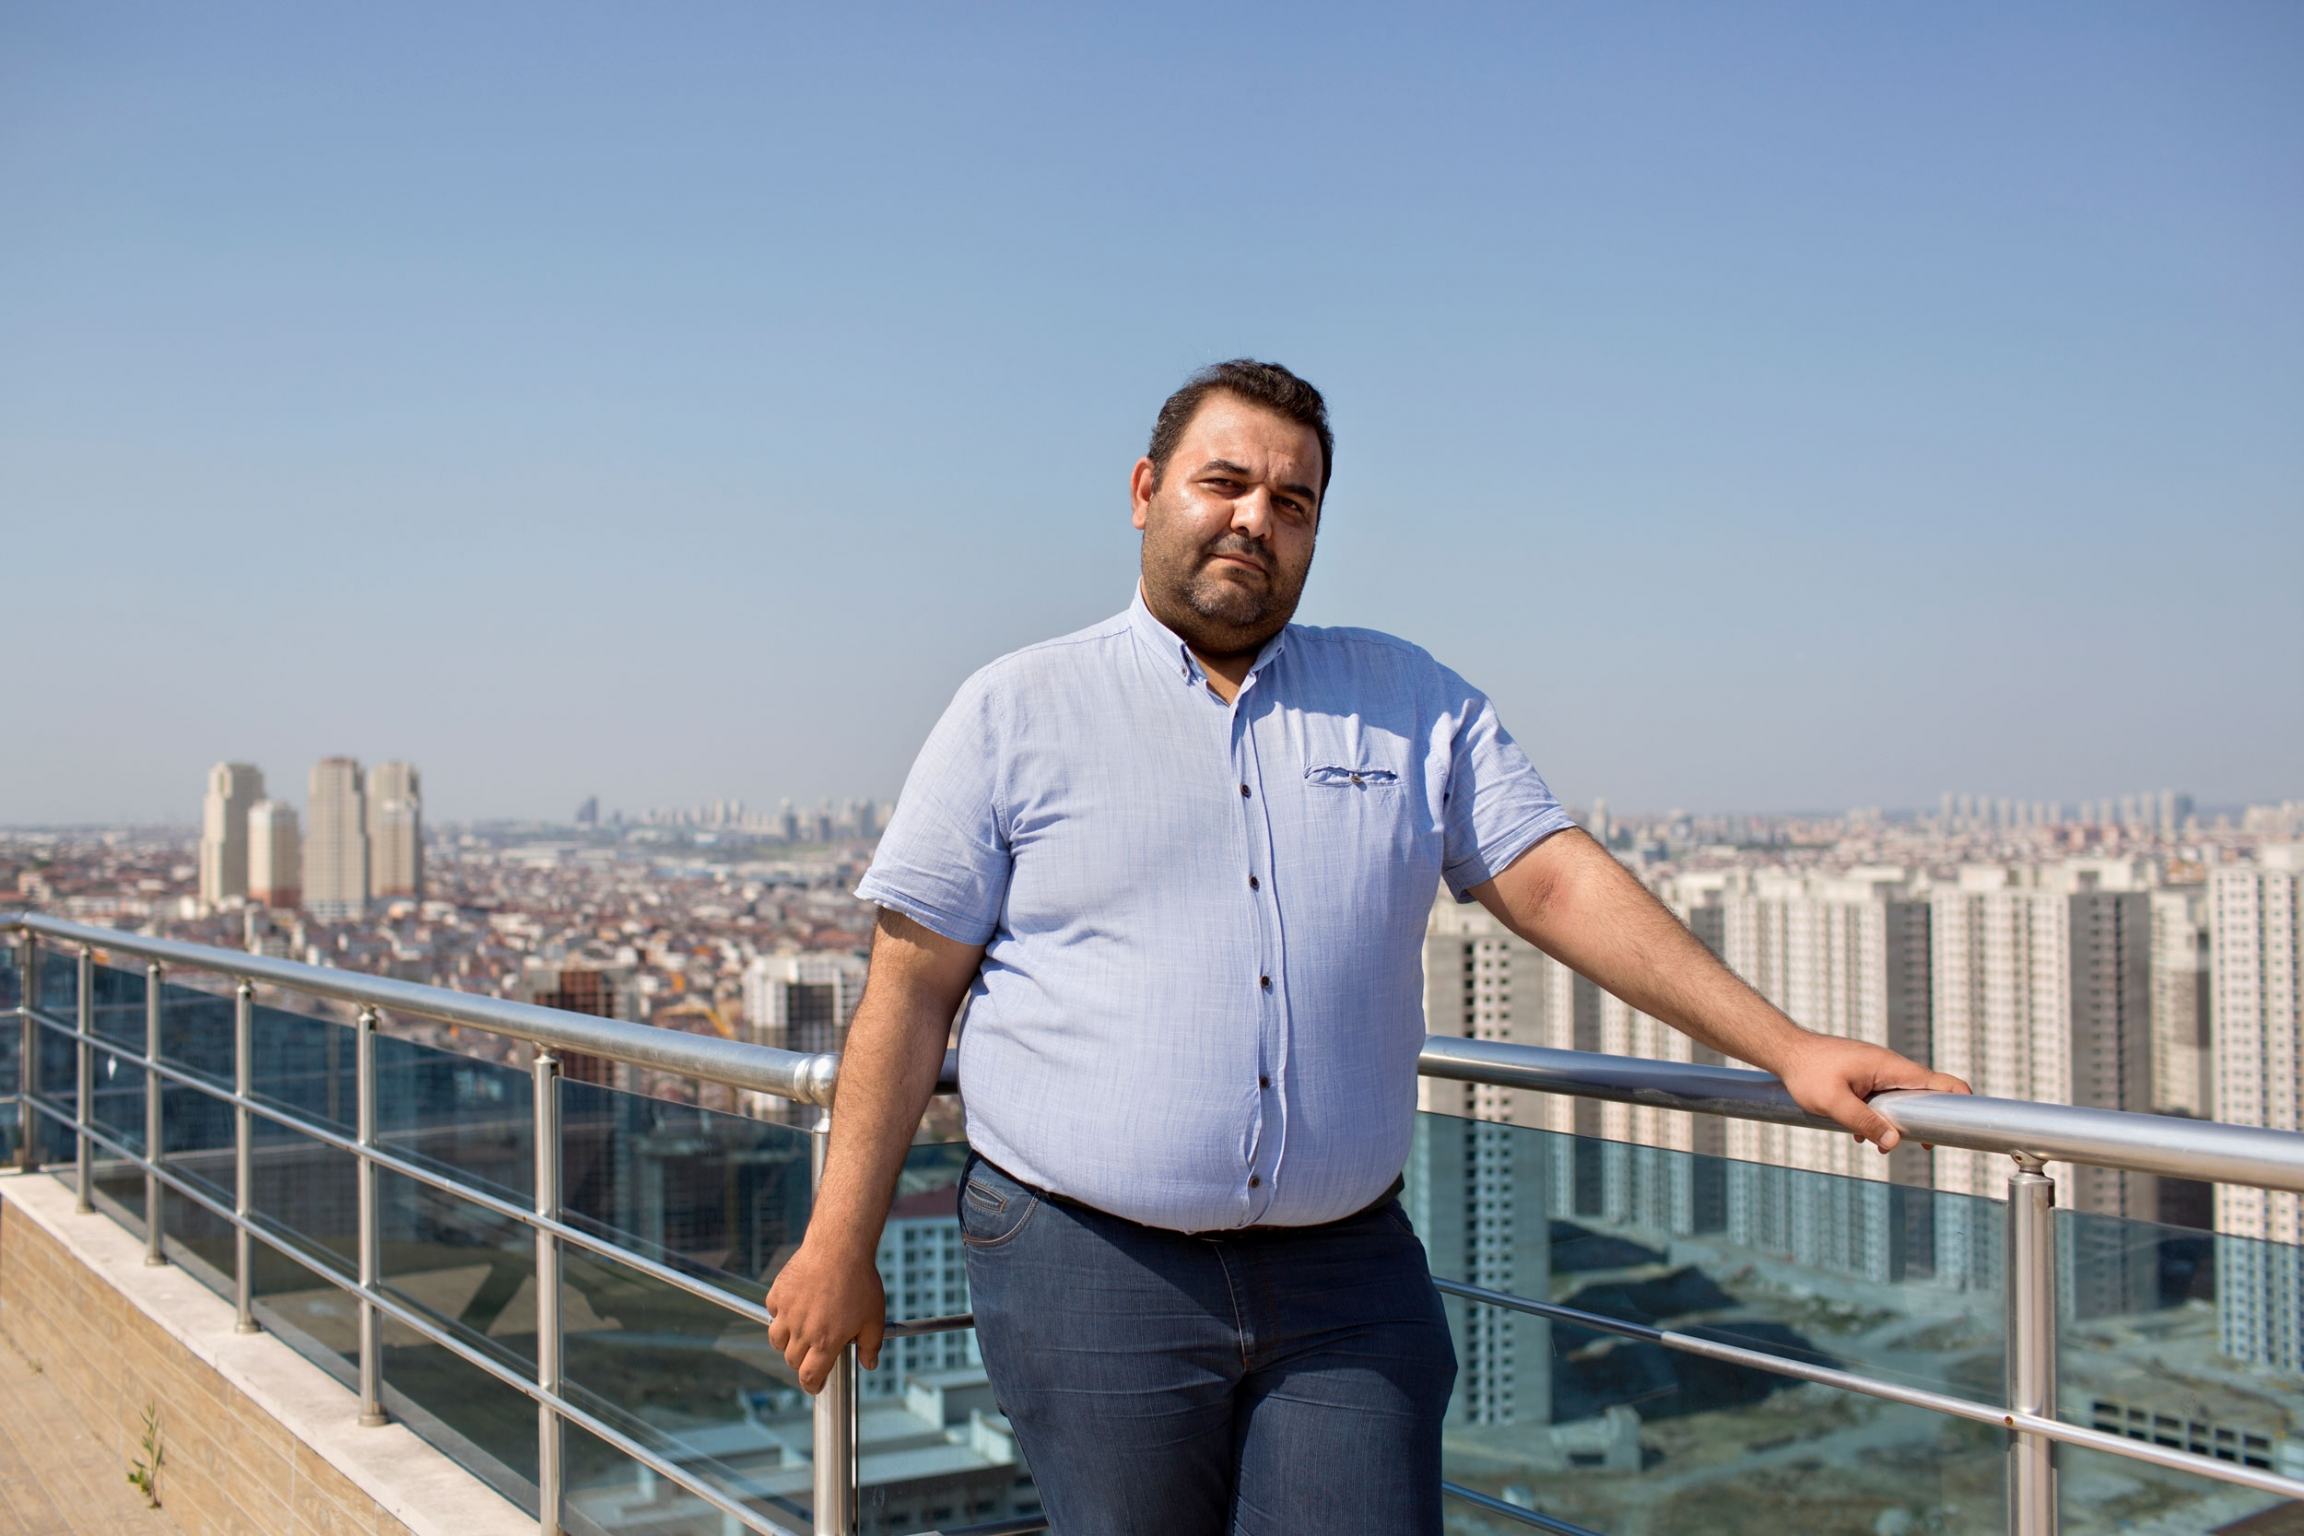 A man is shown in a blue button down shirt and jeans leaning against the railing of a rooftop deck.